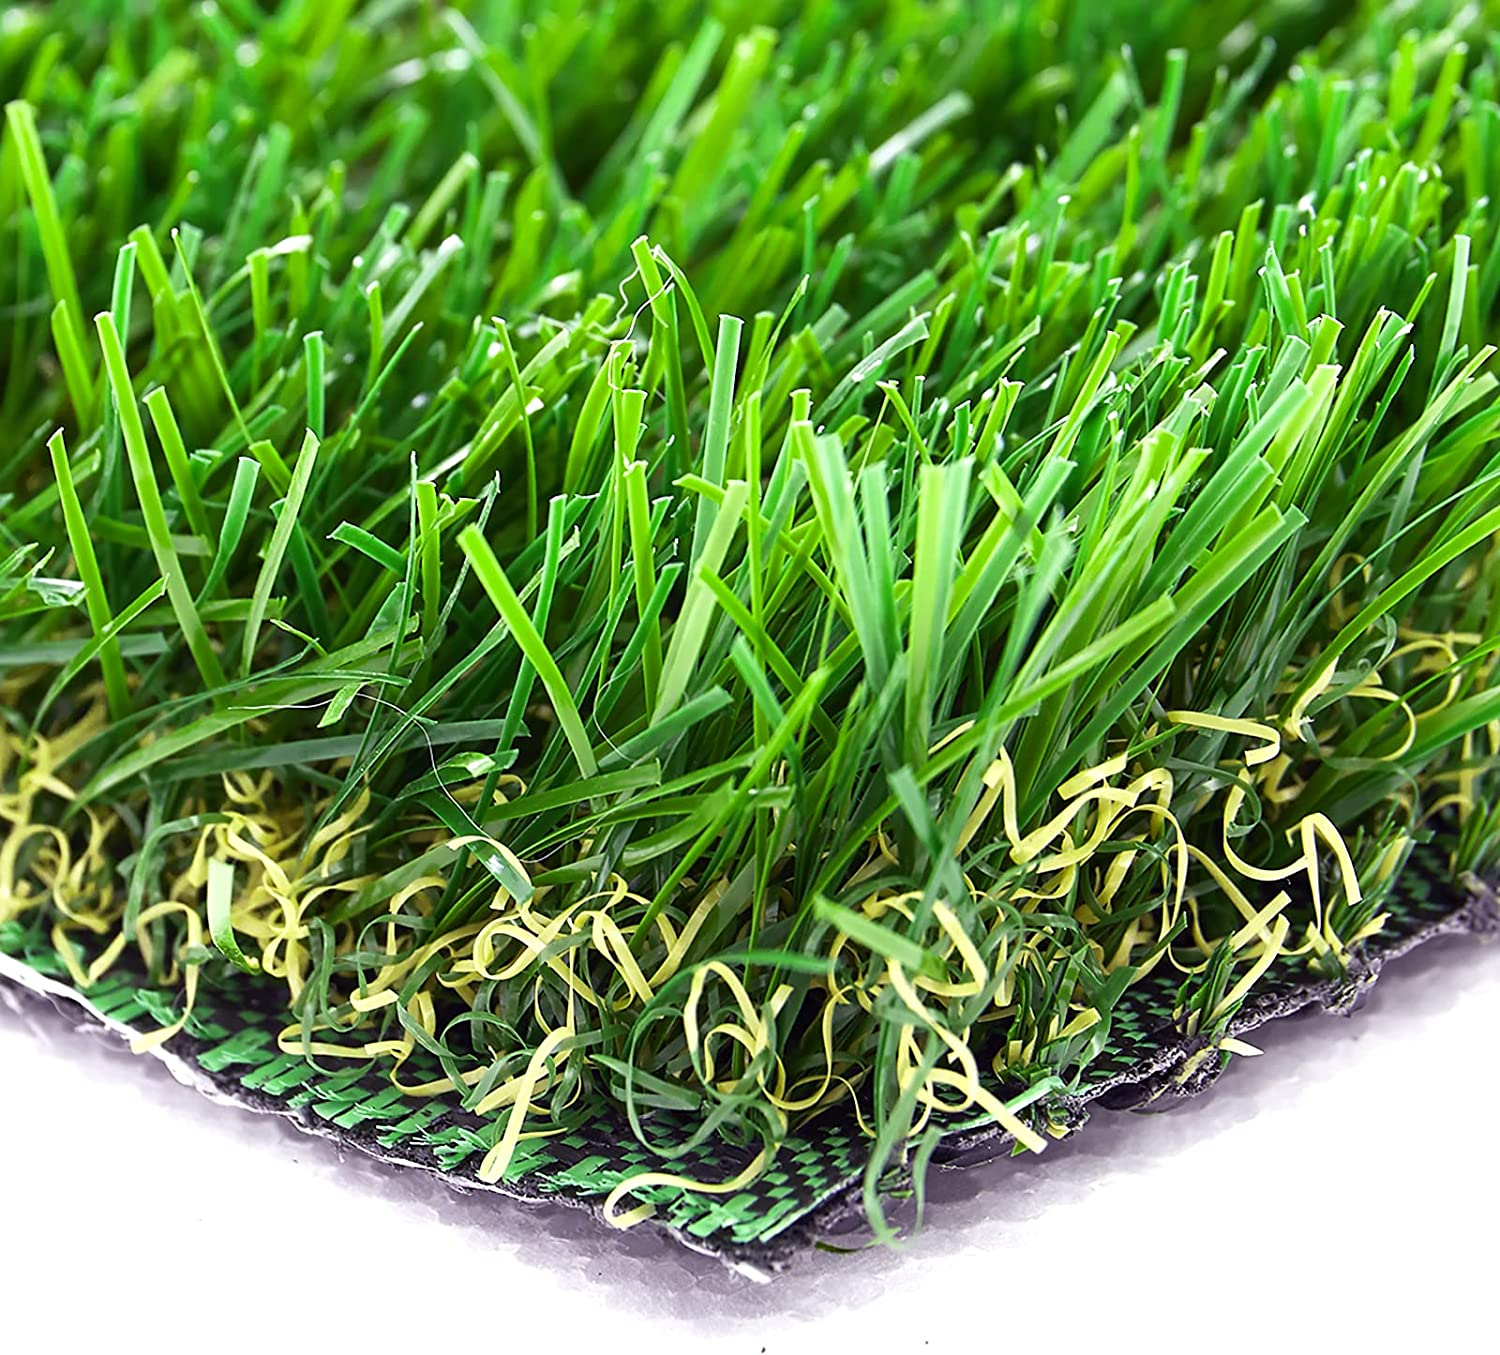 Custom Size Ranking integrated 1st place Artificial Grass Rug - x Holes New Free Shipping FT 3 7 Drainage